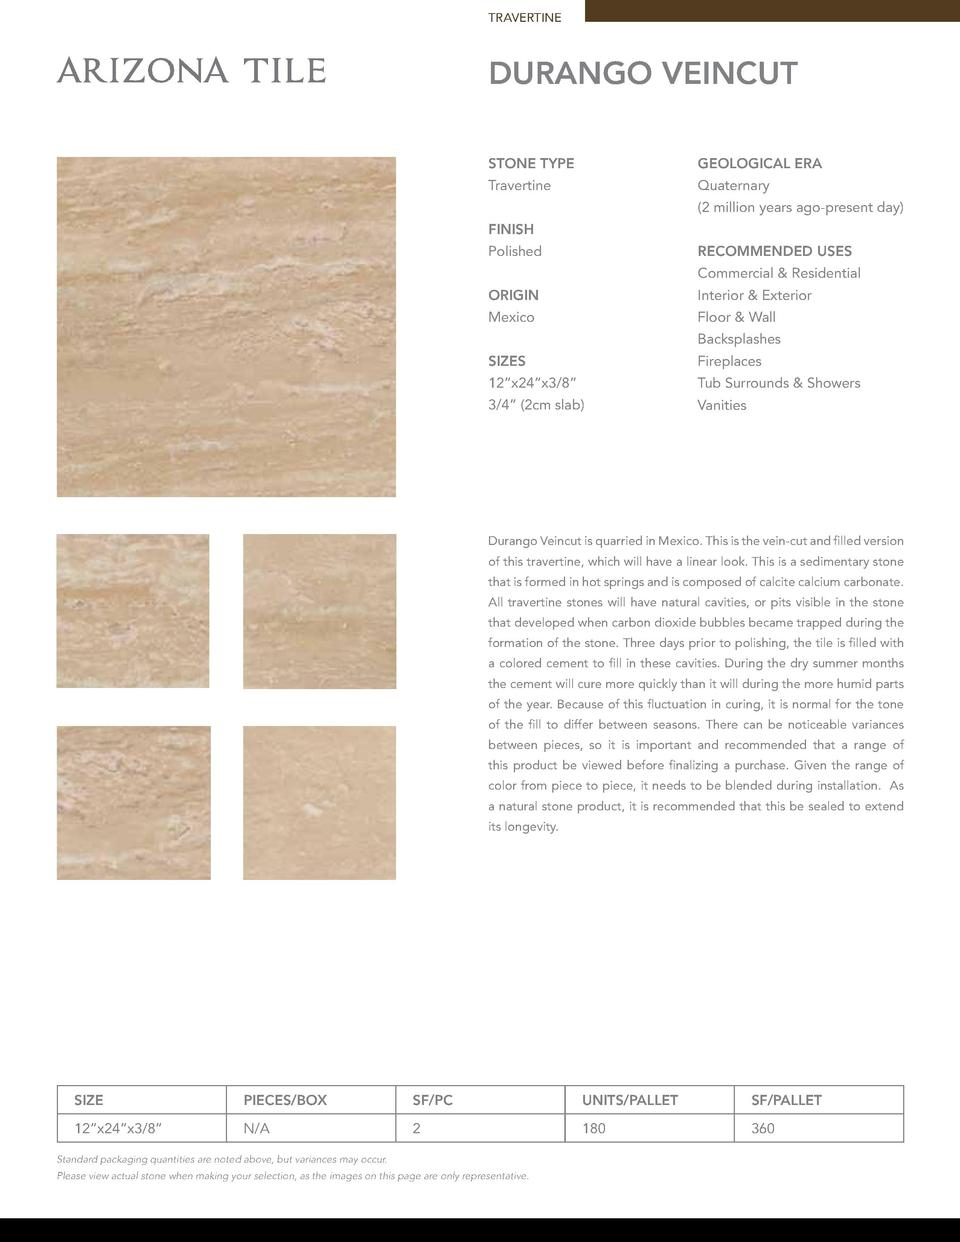 TRAVERTINE  Durango VEINCUT STONE TYPE  GEOLOGICAL ERA  Travertine  Quaternary  2 million years ago-present day   FINISH R...